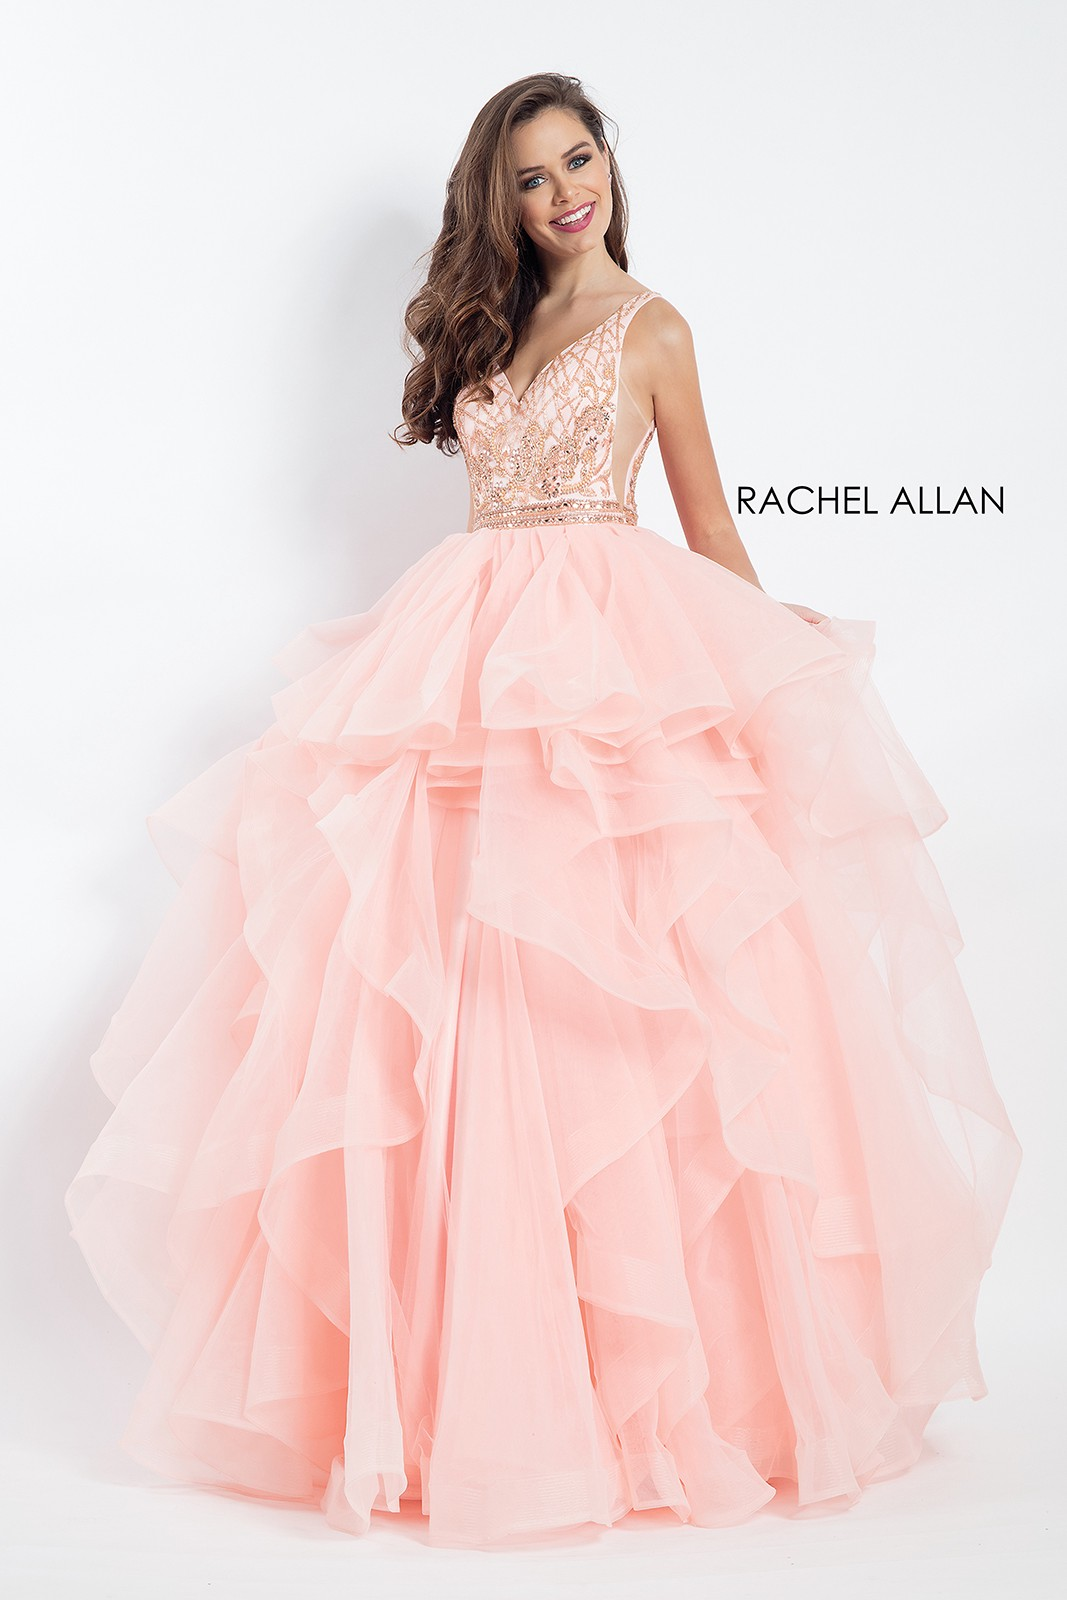 Look modish and awe-inspiring in ruffled blush color Prom Gowns